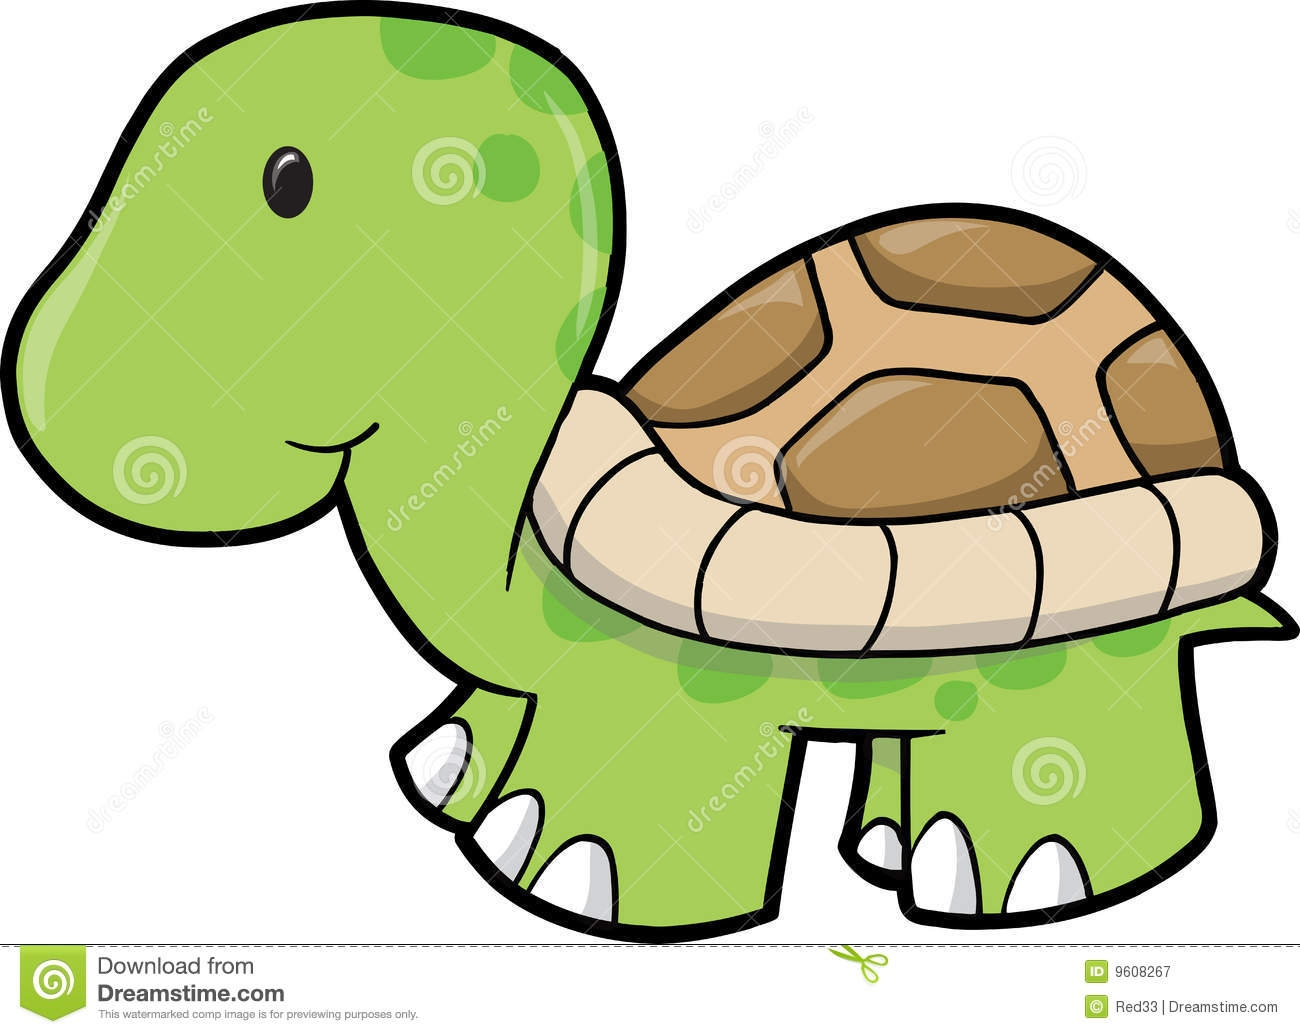 Baby Turtle Clipart at GetDrawings.com | Free for personal use Baby ...